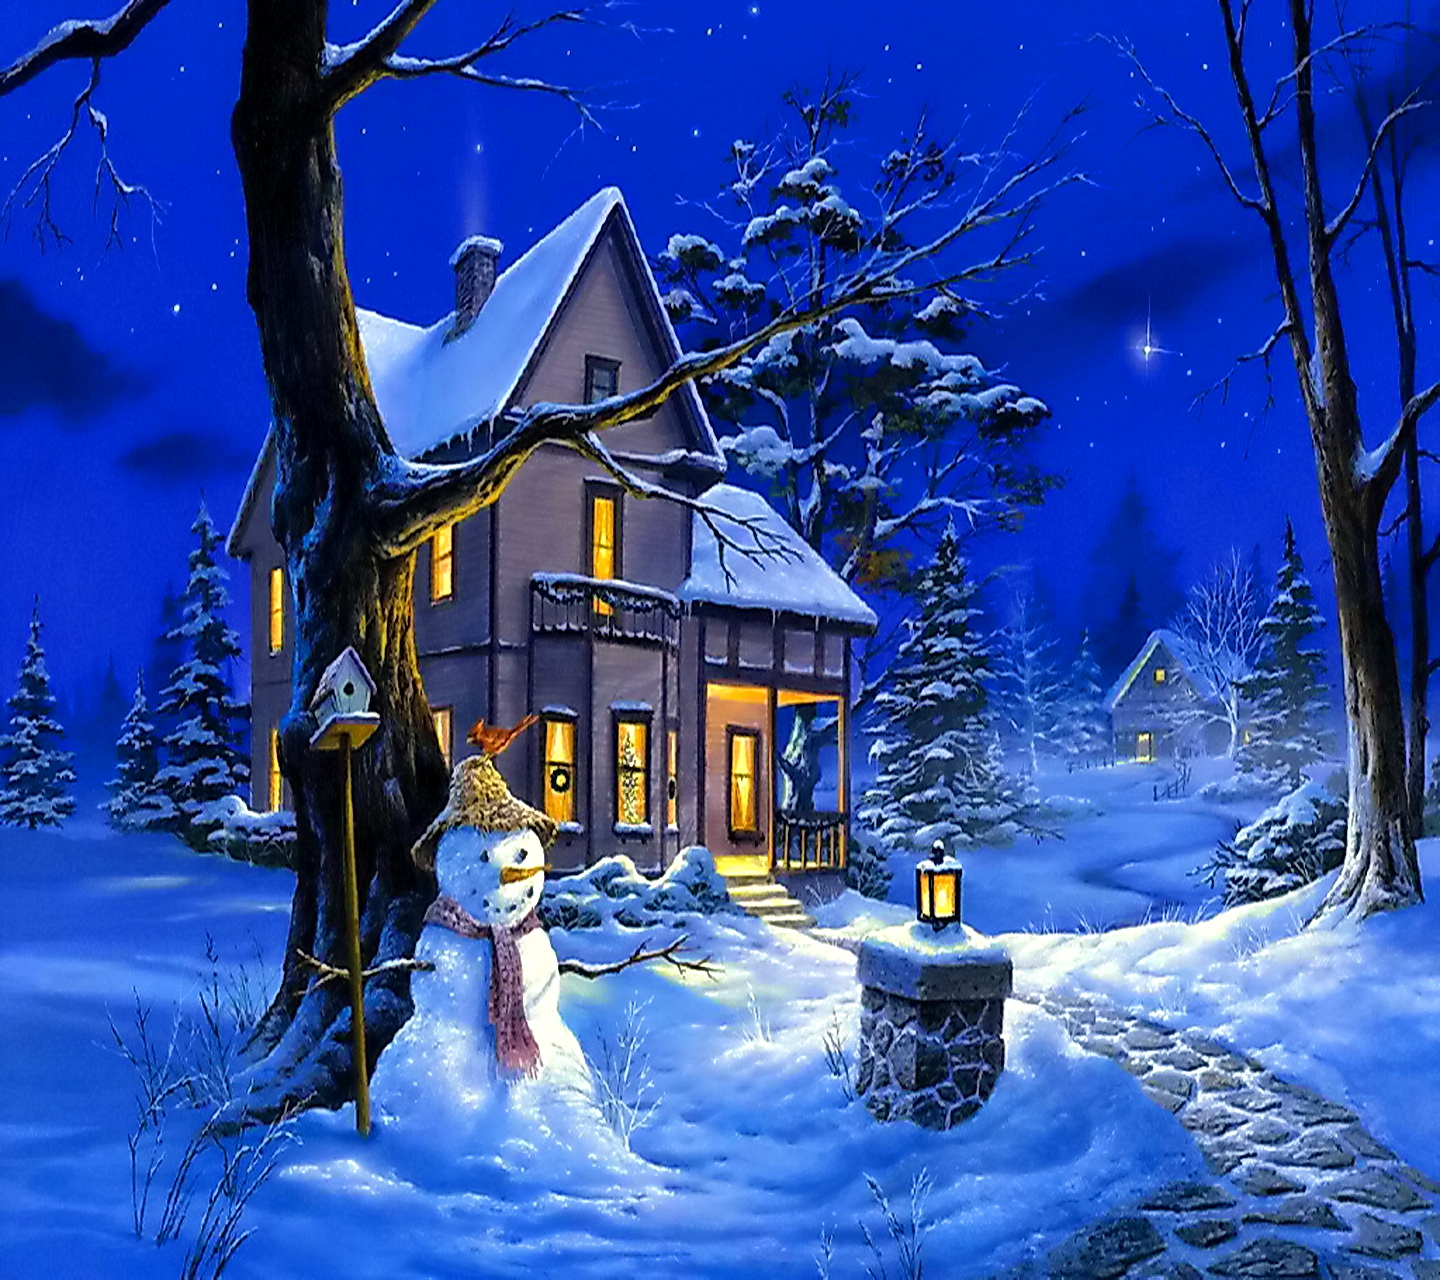 winter night wallpapers hd nature wallpaper hd wallpapers - Starry Christmas